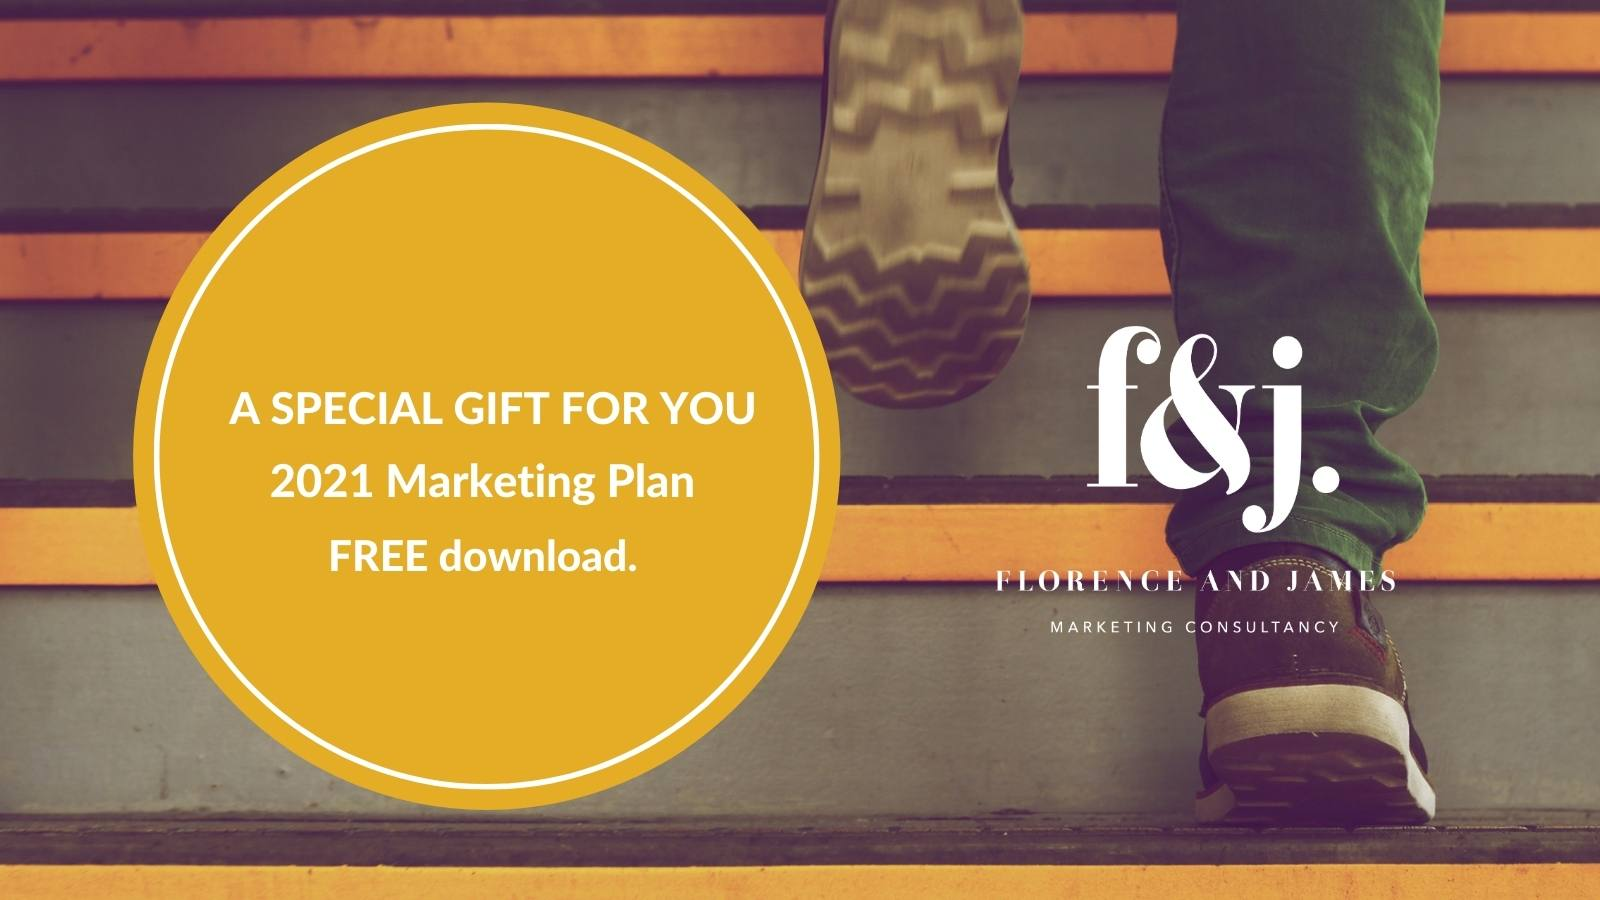 footsteps on stairs, orange box with free marketing plan download text.